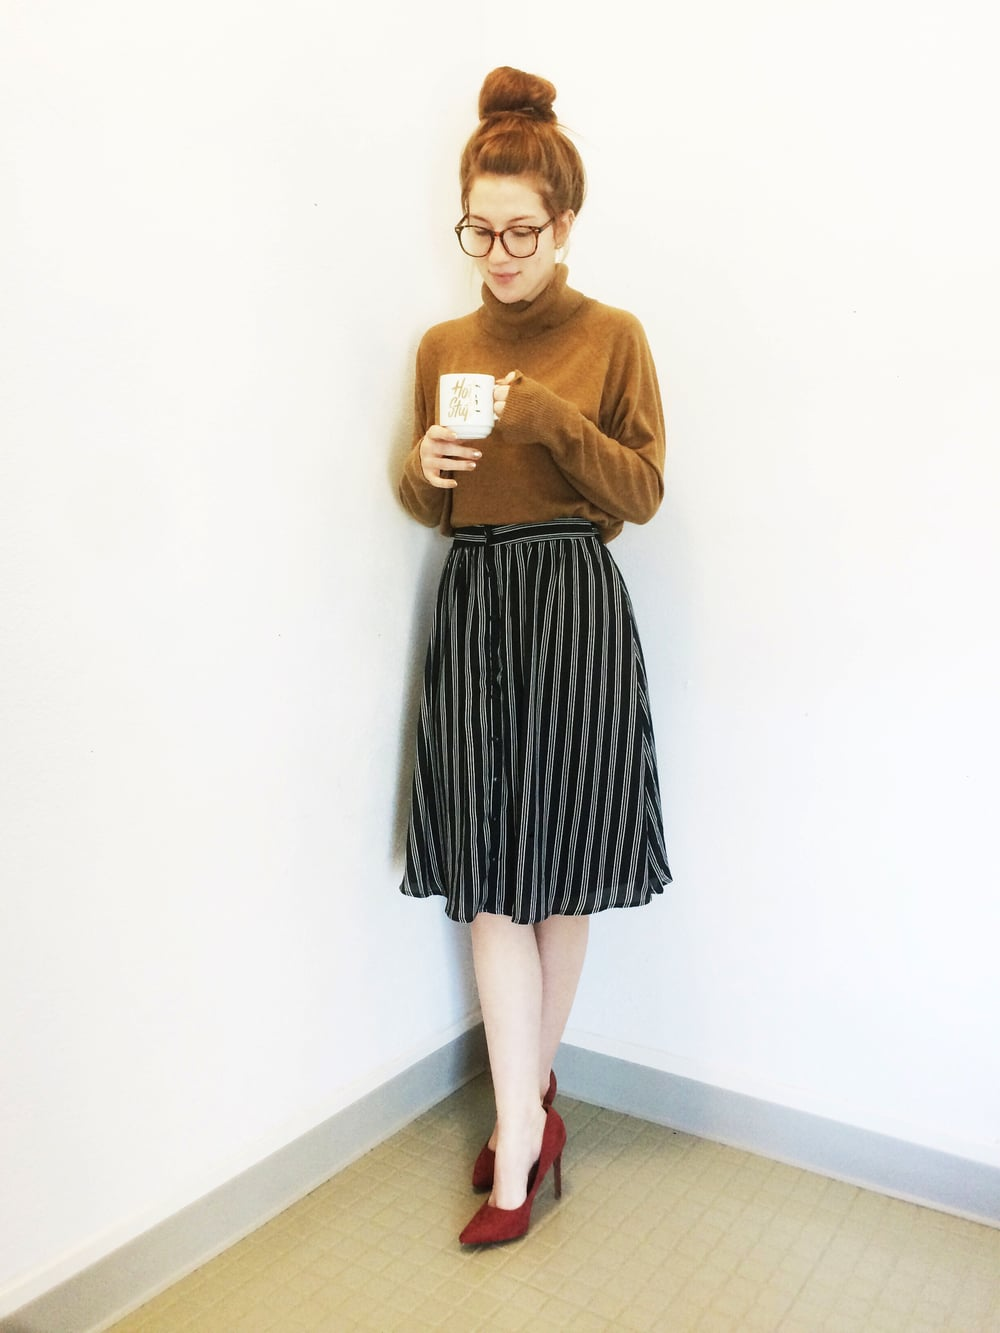 Sweater: Old Navy, Skirt & Shoes: Charlotte Russe